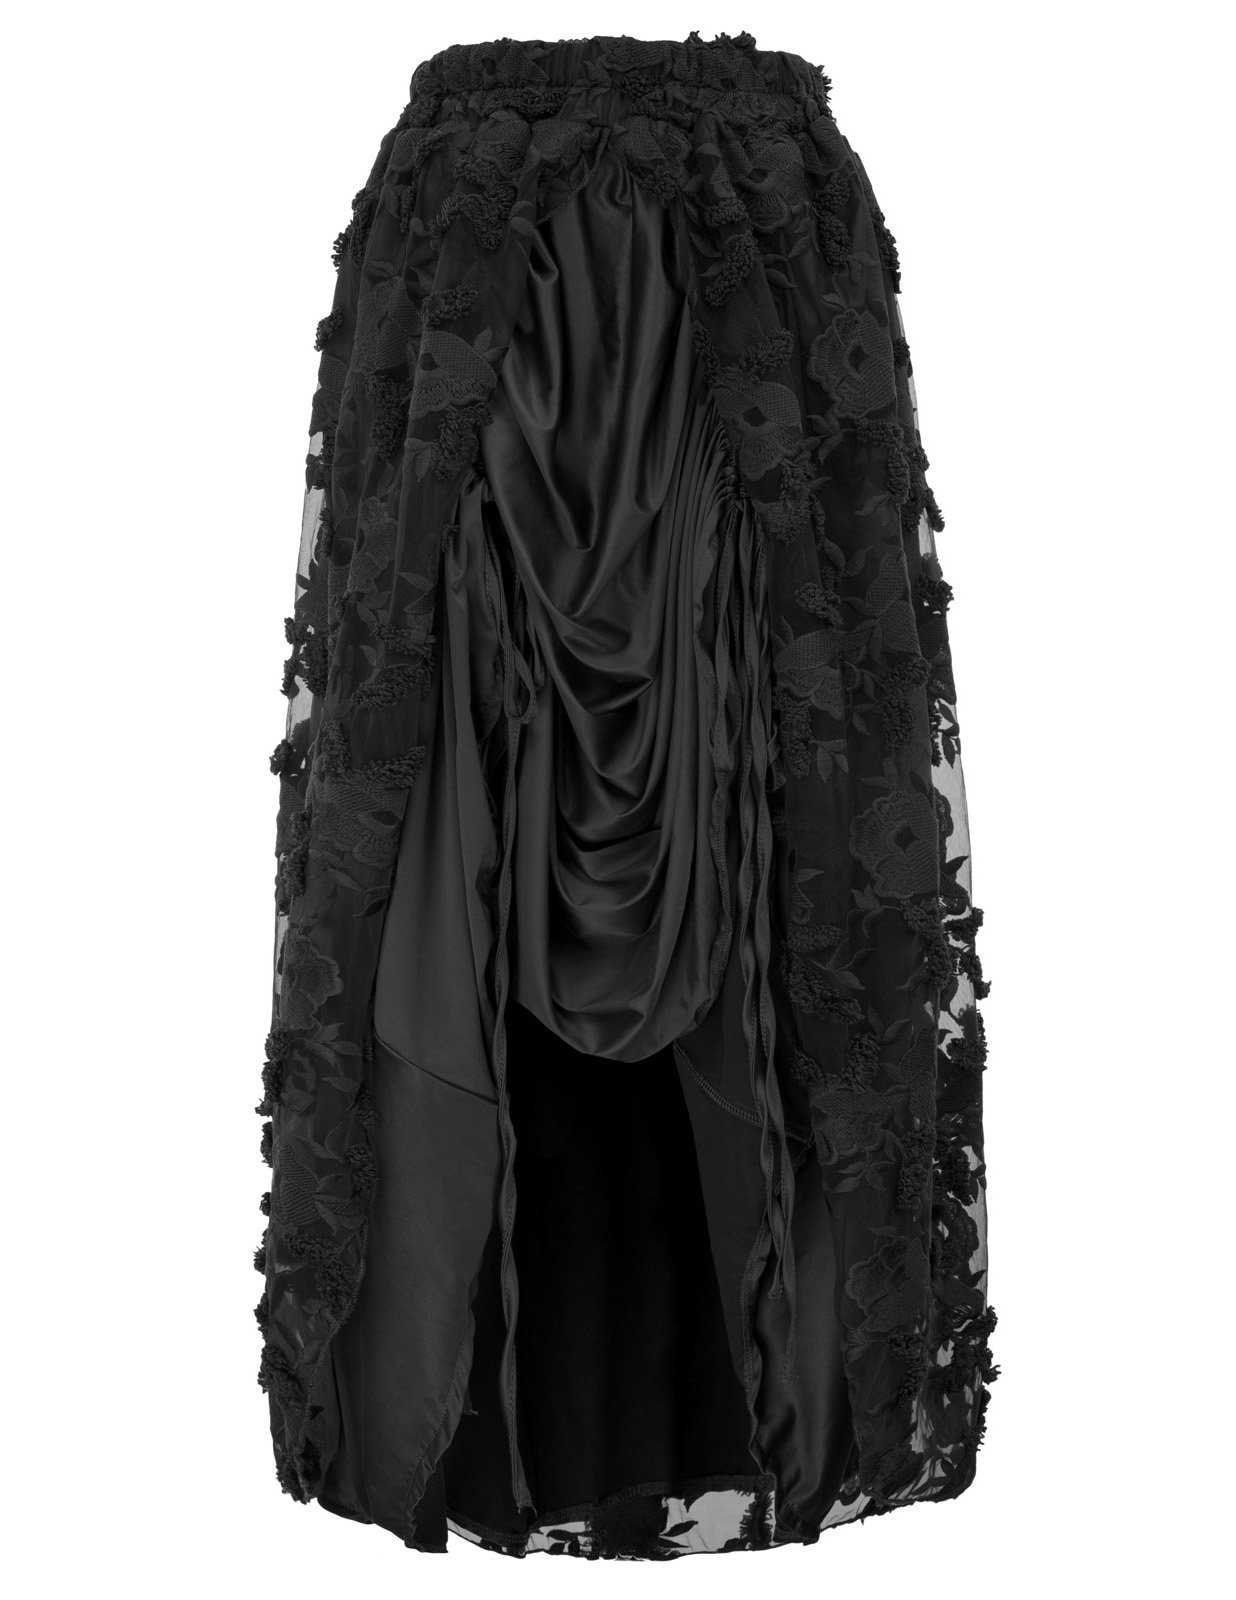 Belle Poque Steampunk Gothic Victorian High Low Skirt Bustle Style 3